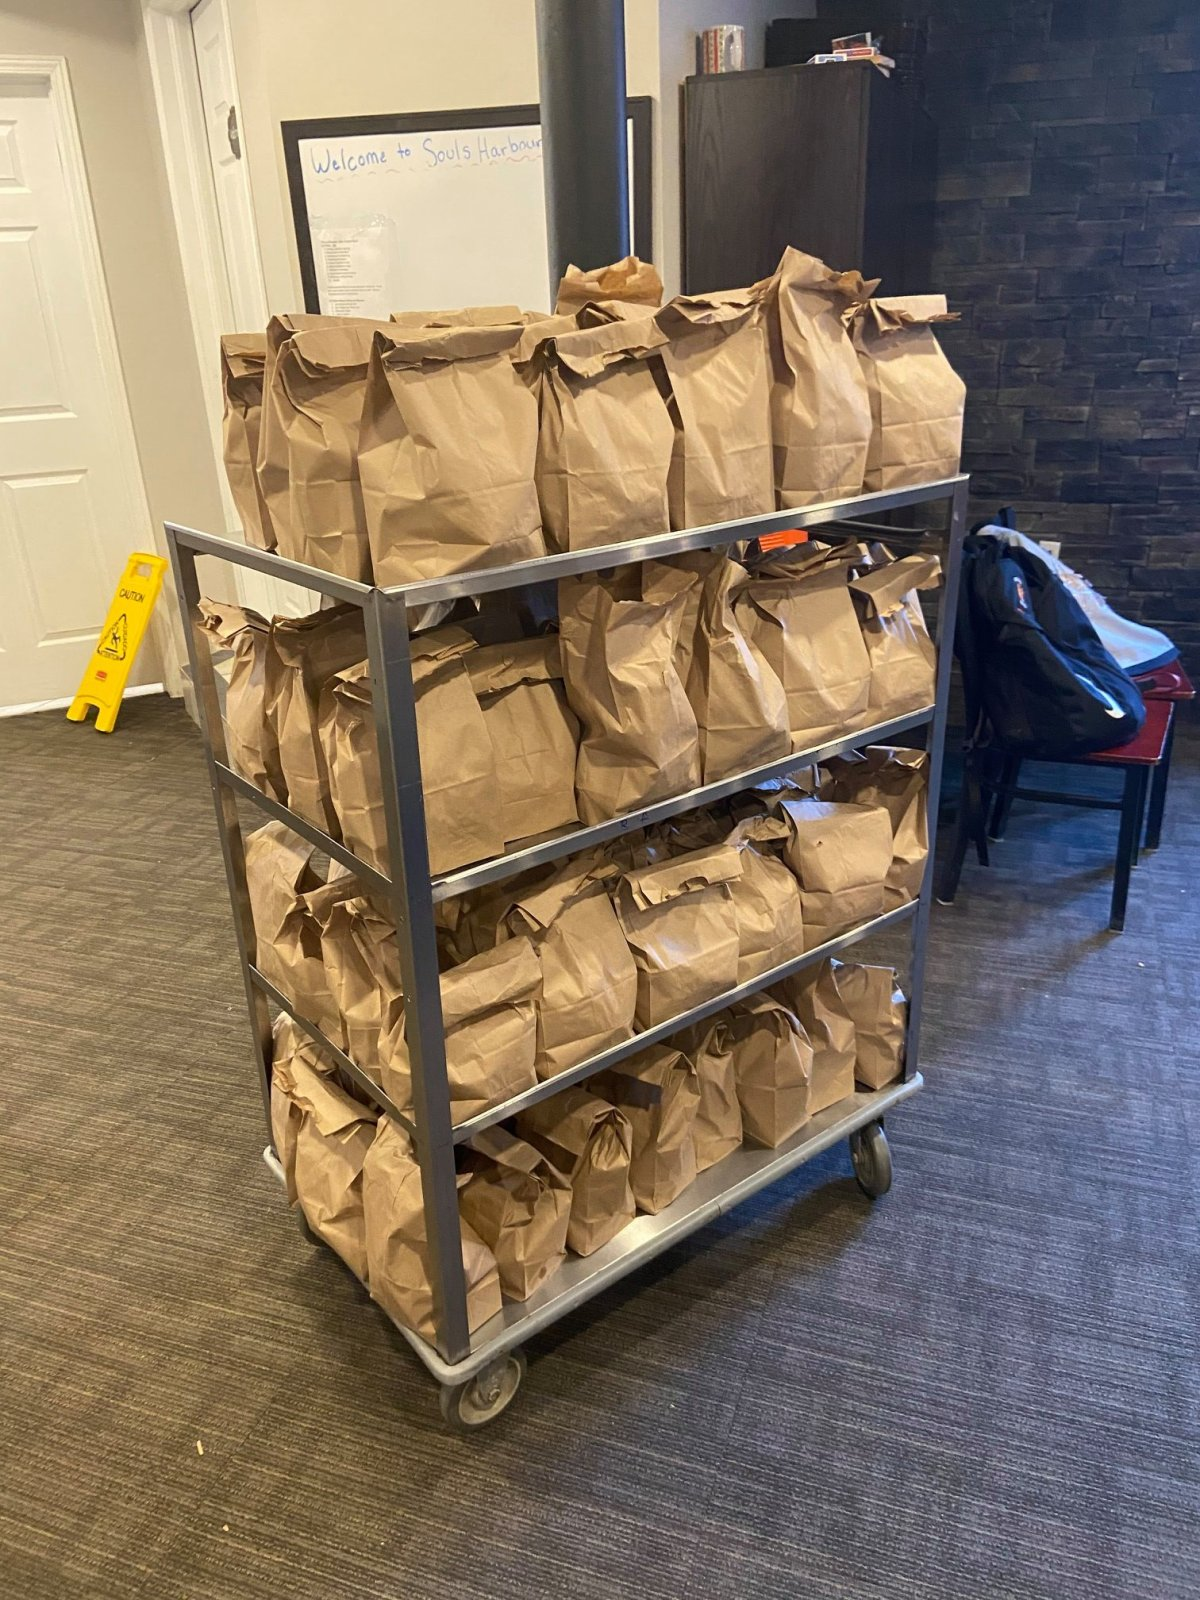 Meals are getting prepared and distributed by Souls Harbour Rescue Mission.